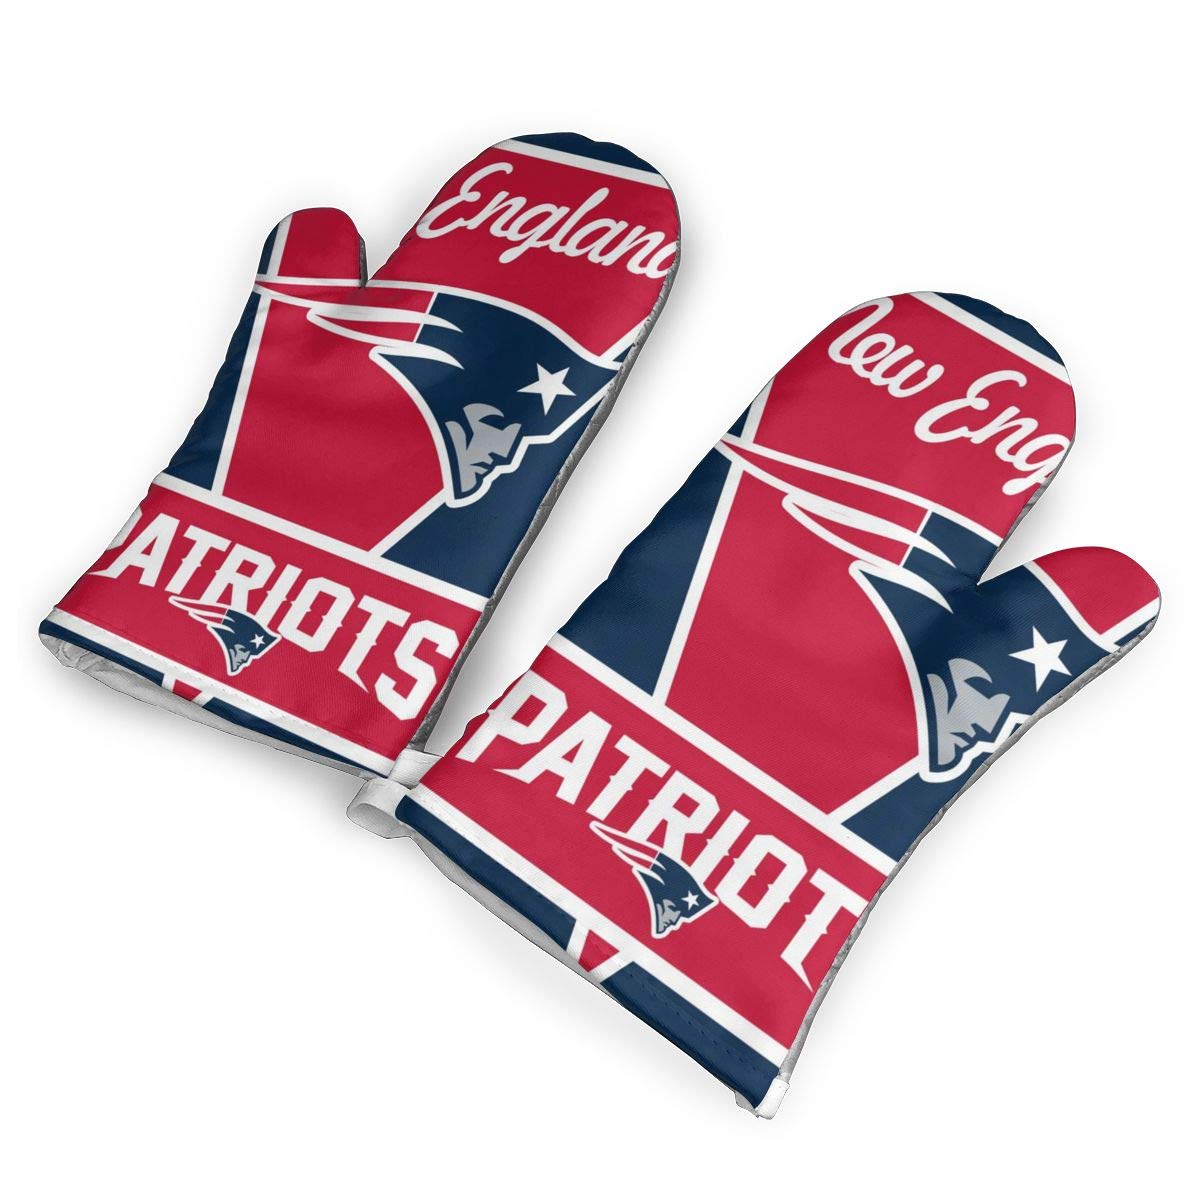 not New England Patriots Oven Mitts with Polyester Fabric Printed Pattern,1 Pair of Heat Resistant Oven Gloves for Cooking,Baking,Grilling,Barbecue Potholders